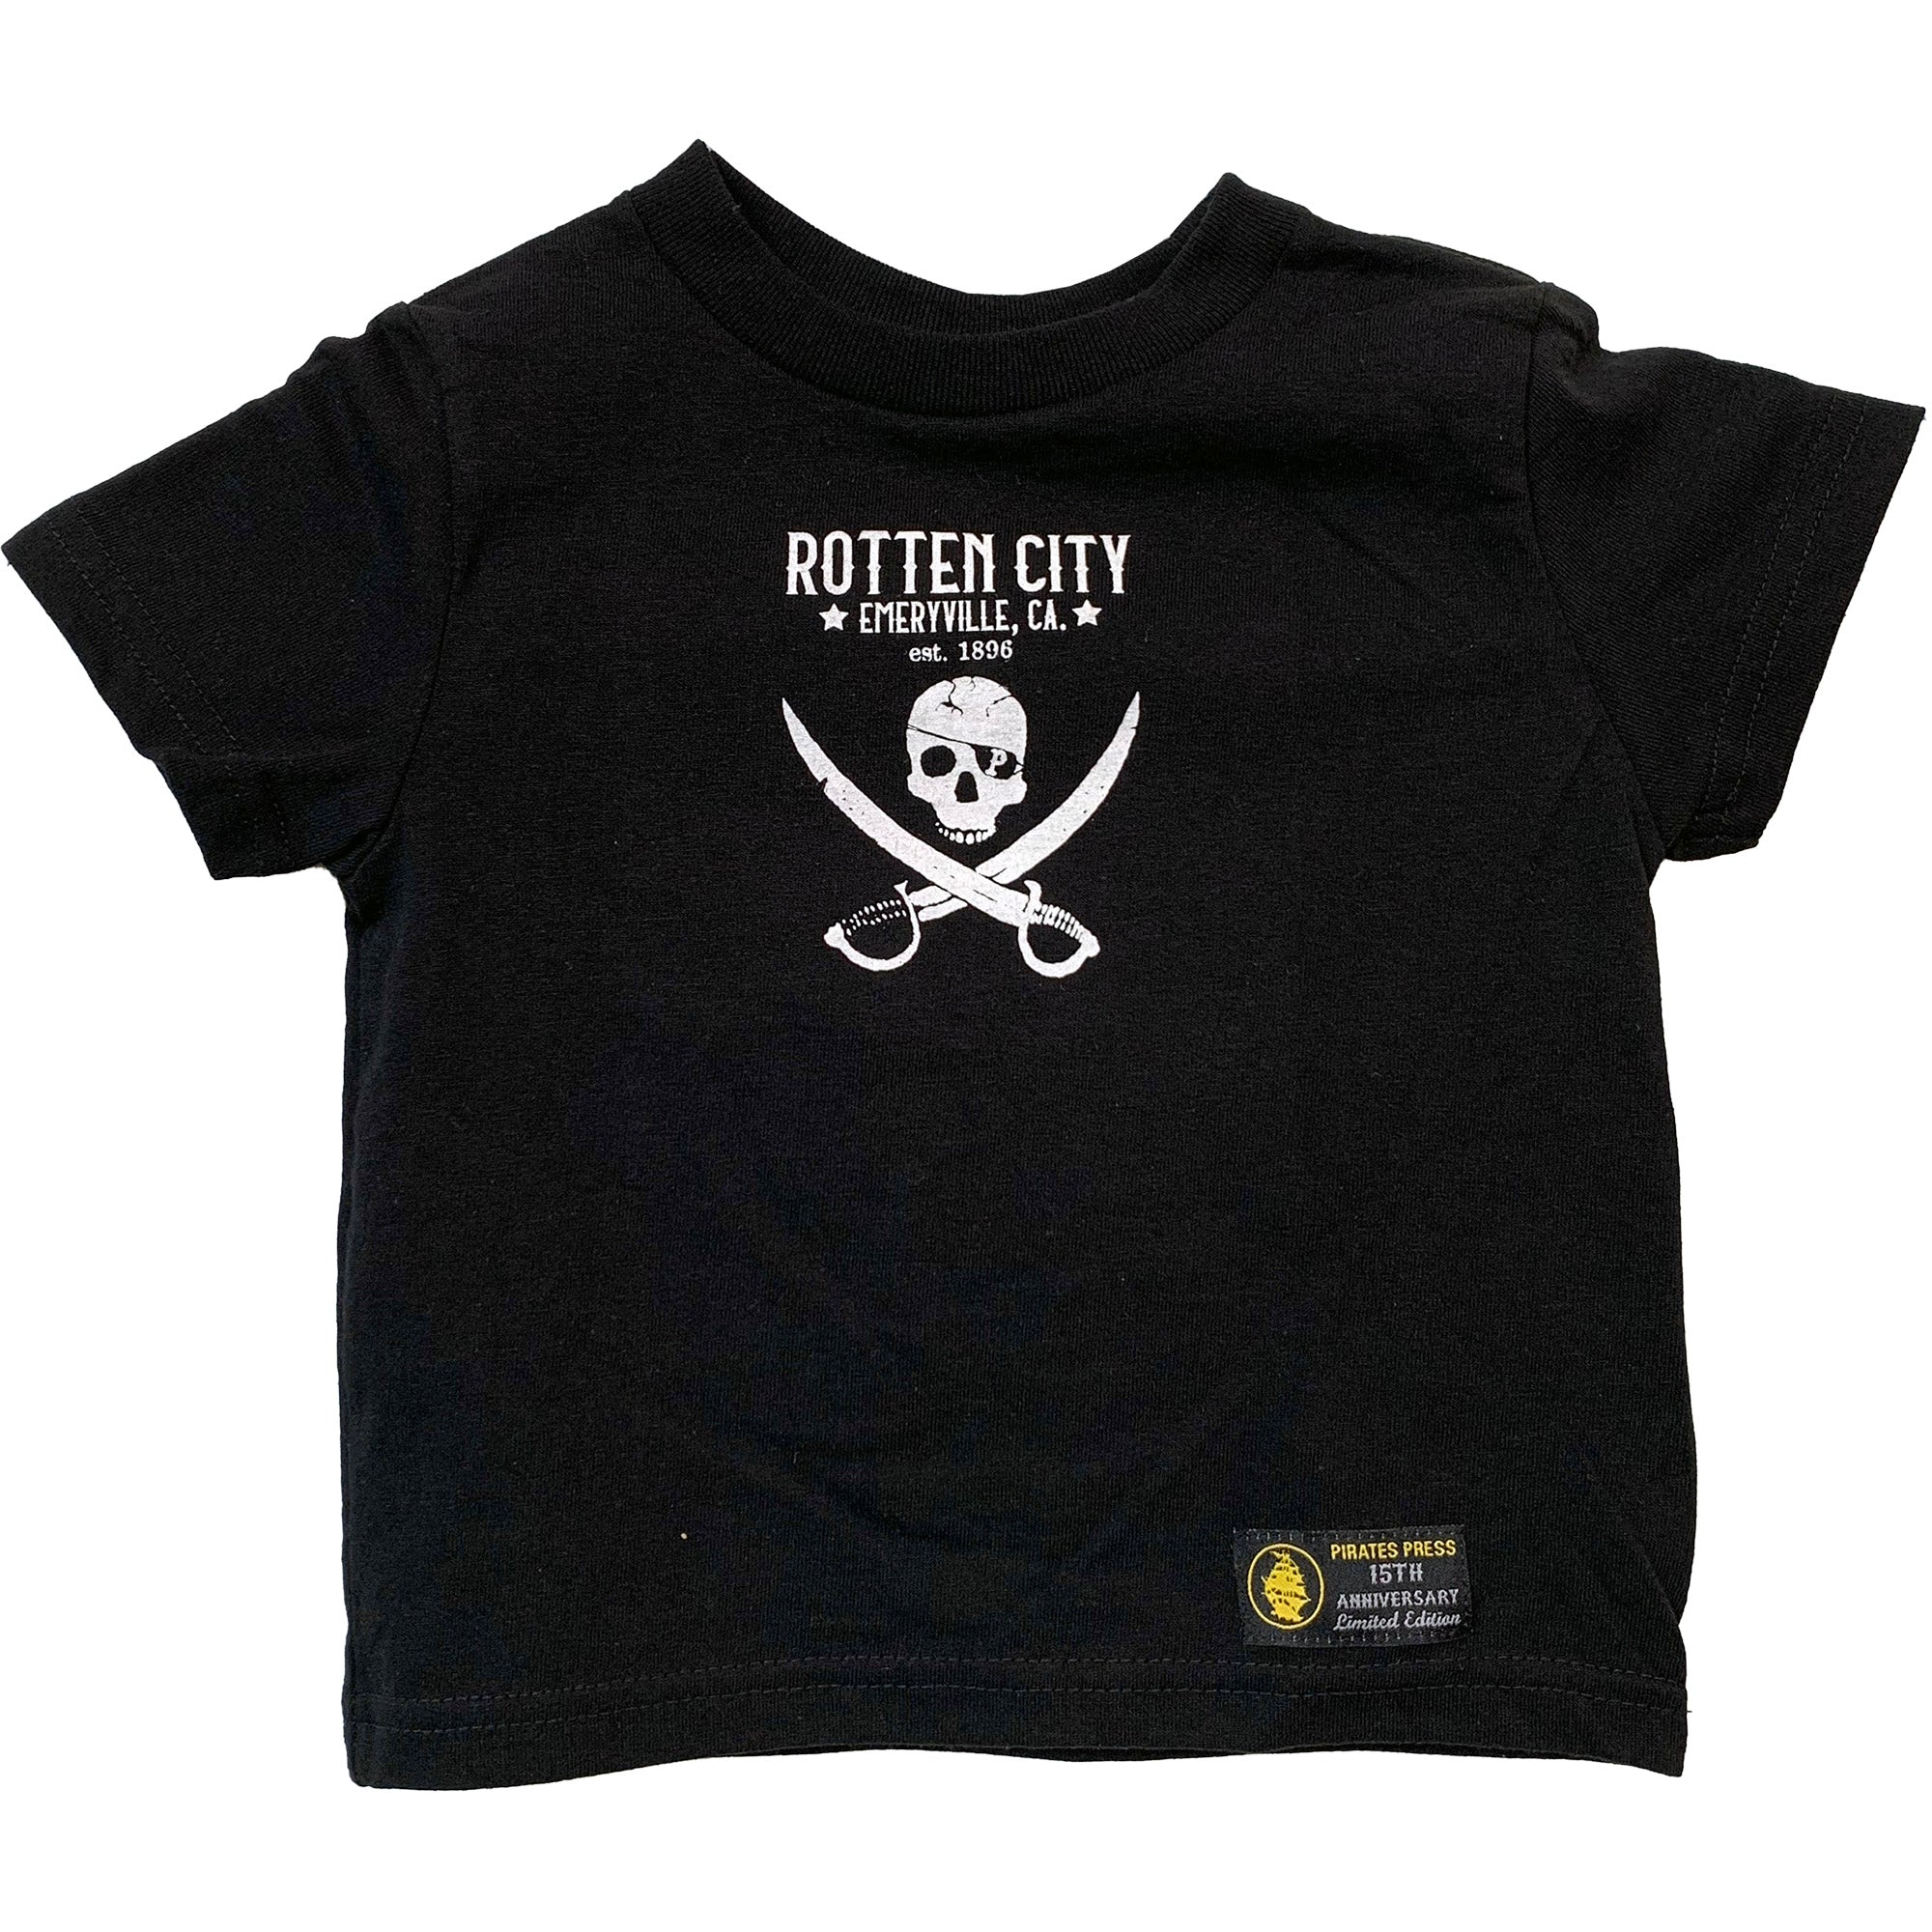 Pirates Press - Rotten City - Black - 15 Year Tag - T-Shirt - Toddler